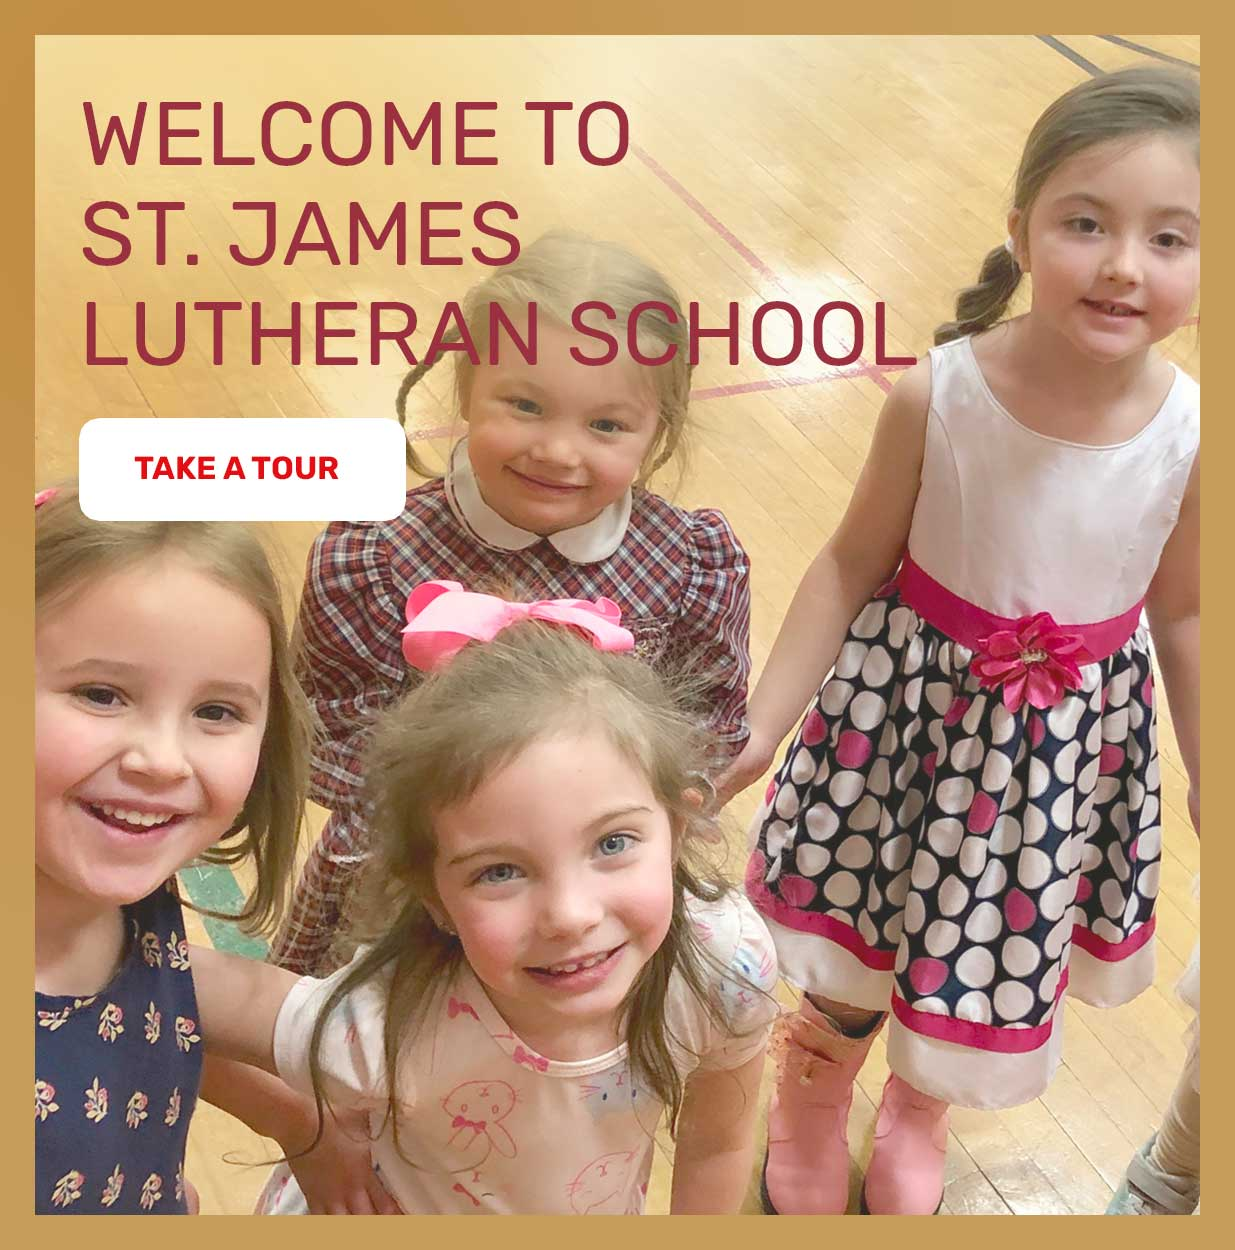 Take a tour of St. James School